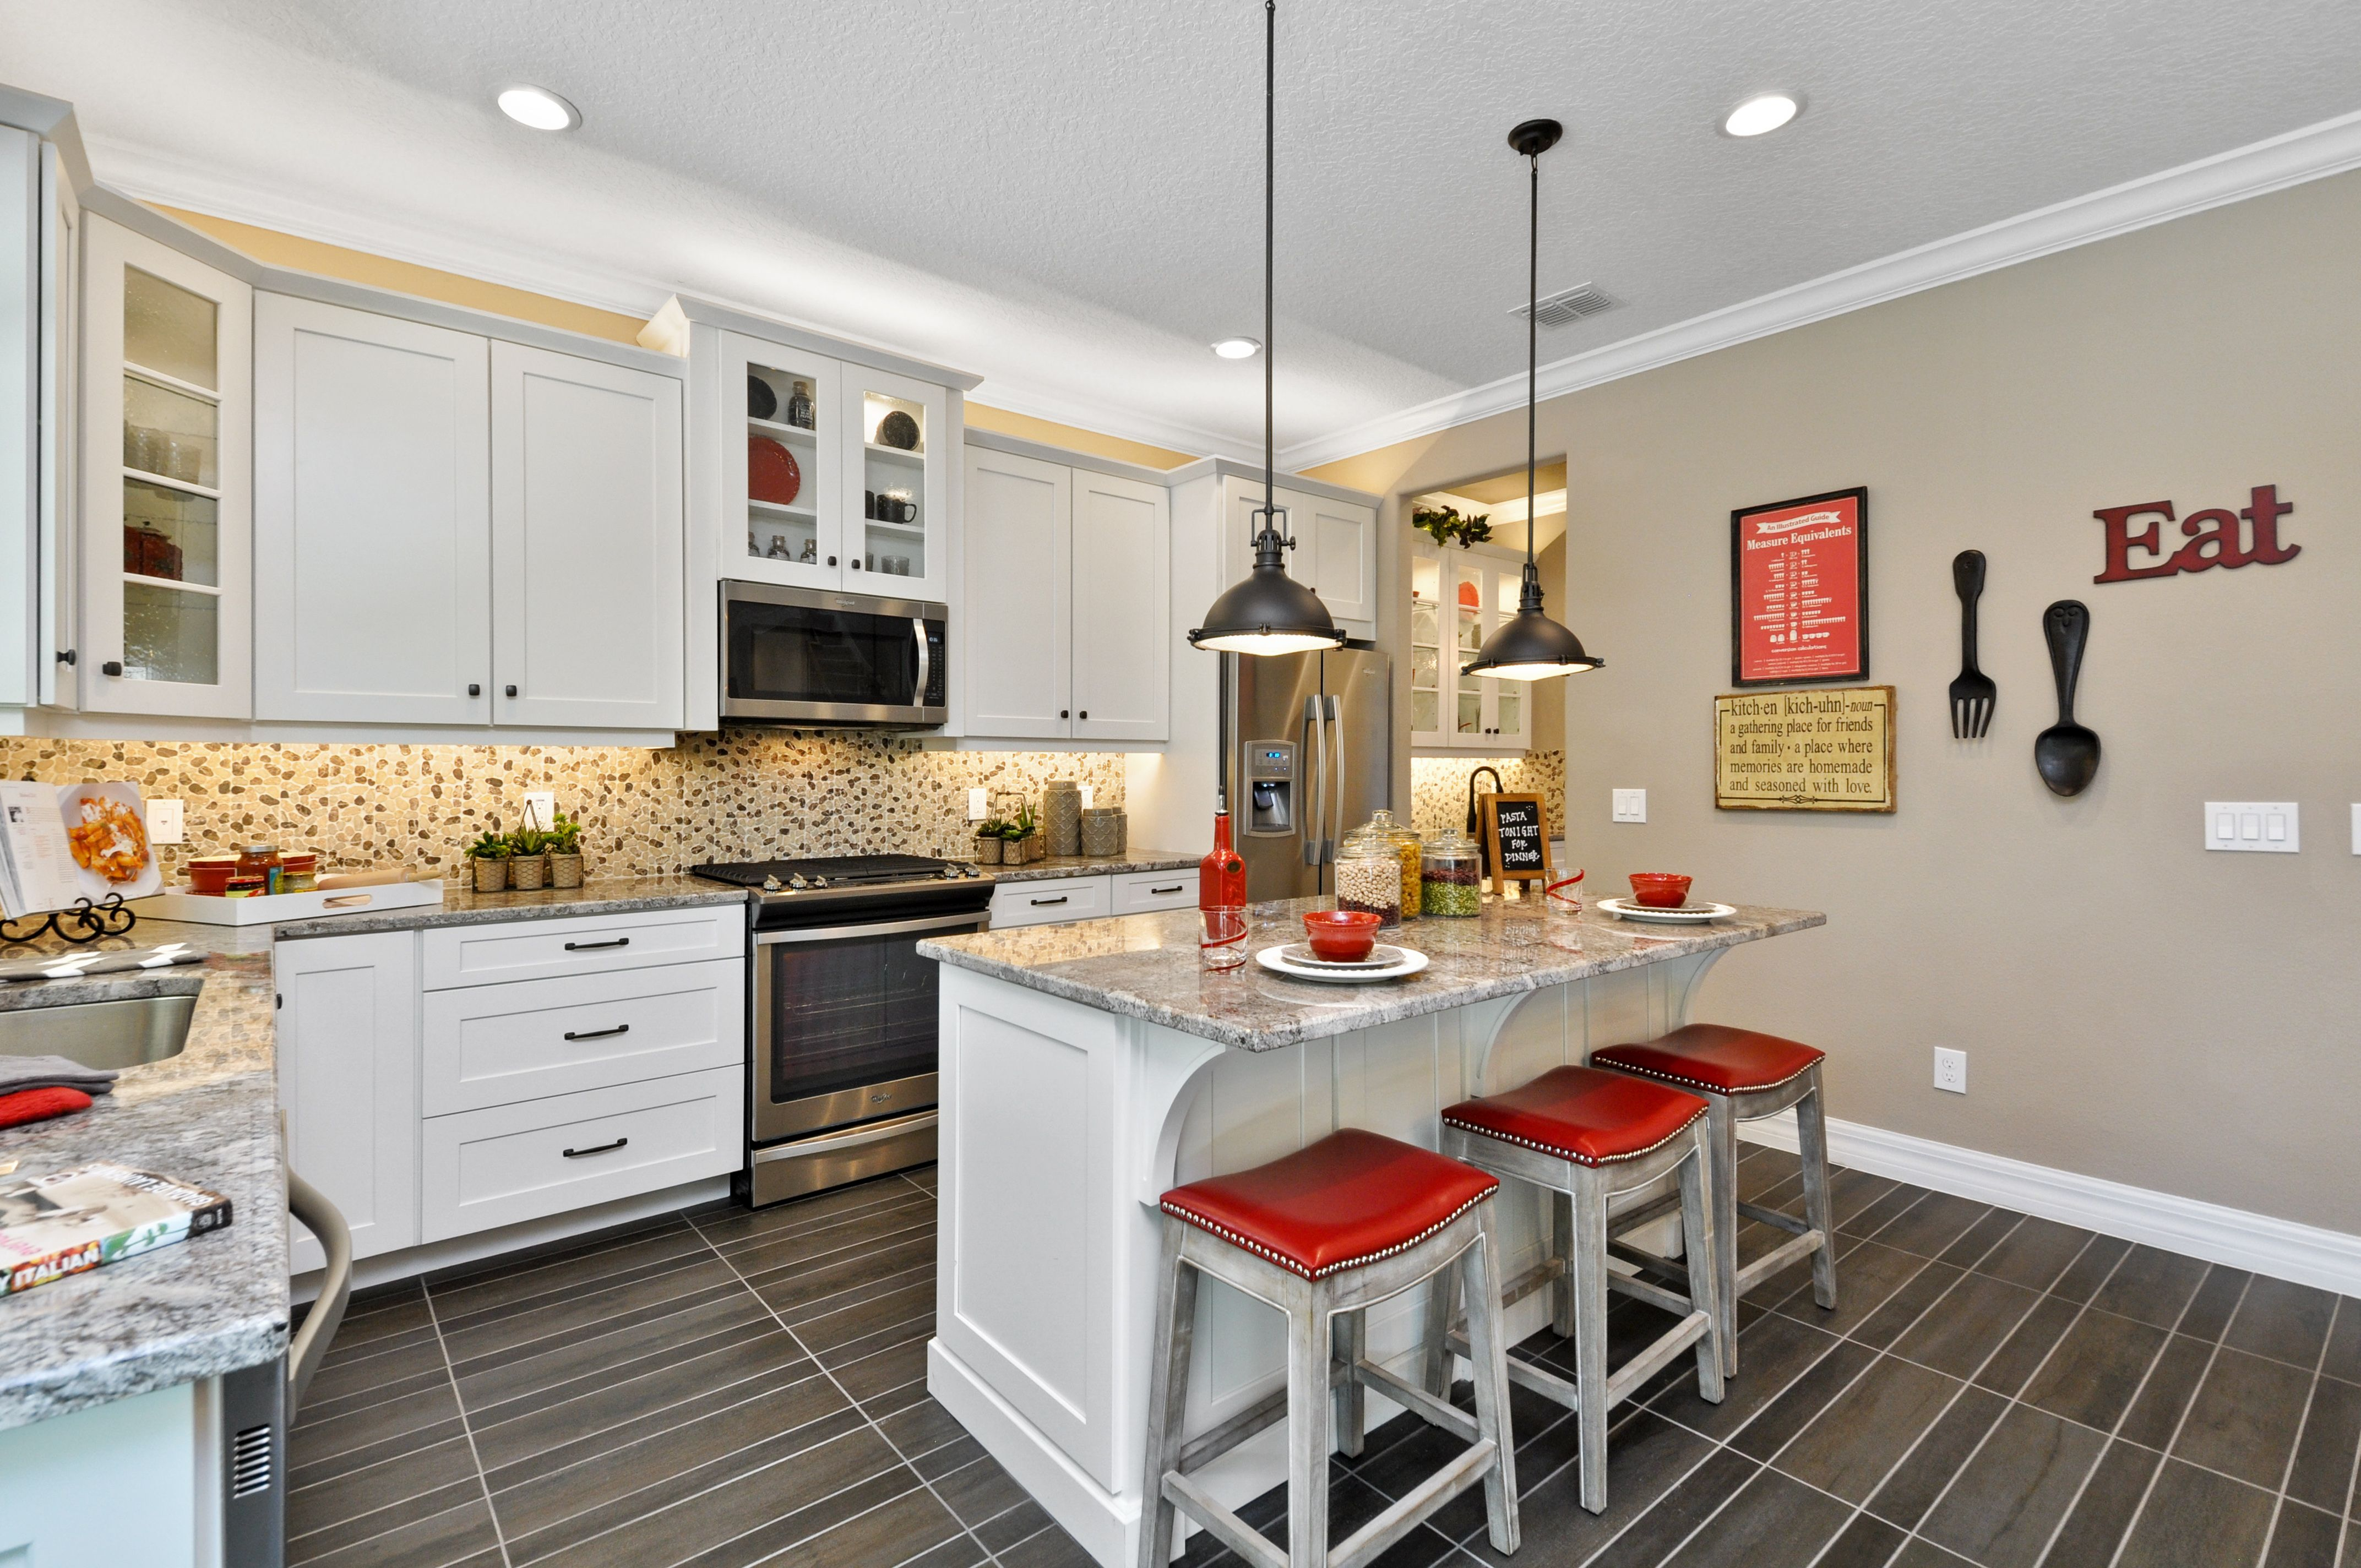 another fine mattamy kitchen our coventry model millennia park another fine mattamy kitchen our coventry model millennia park orlando kitchens the mattamy way pinterest coventry kitchens and house